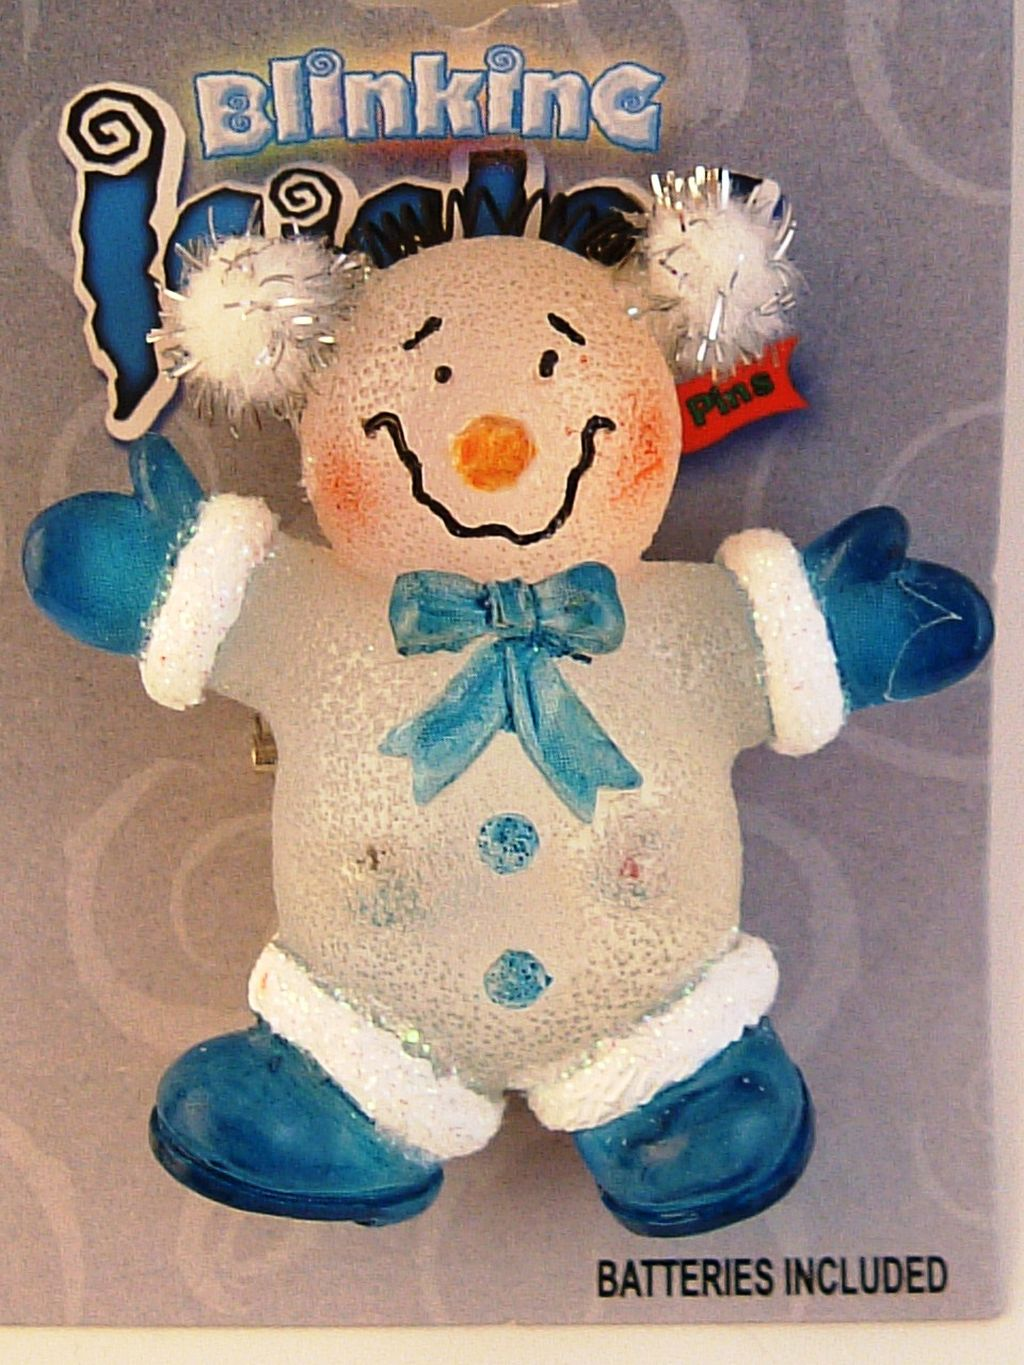 Blinking Icicle Christmas Lights Blue Clown Brooch Pin, Batteries Included